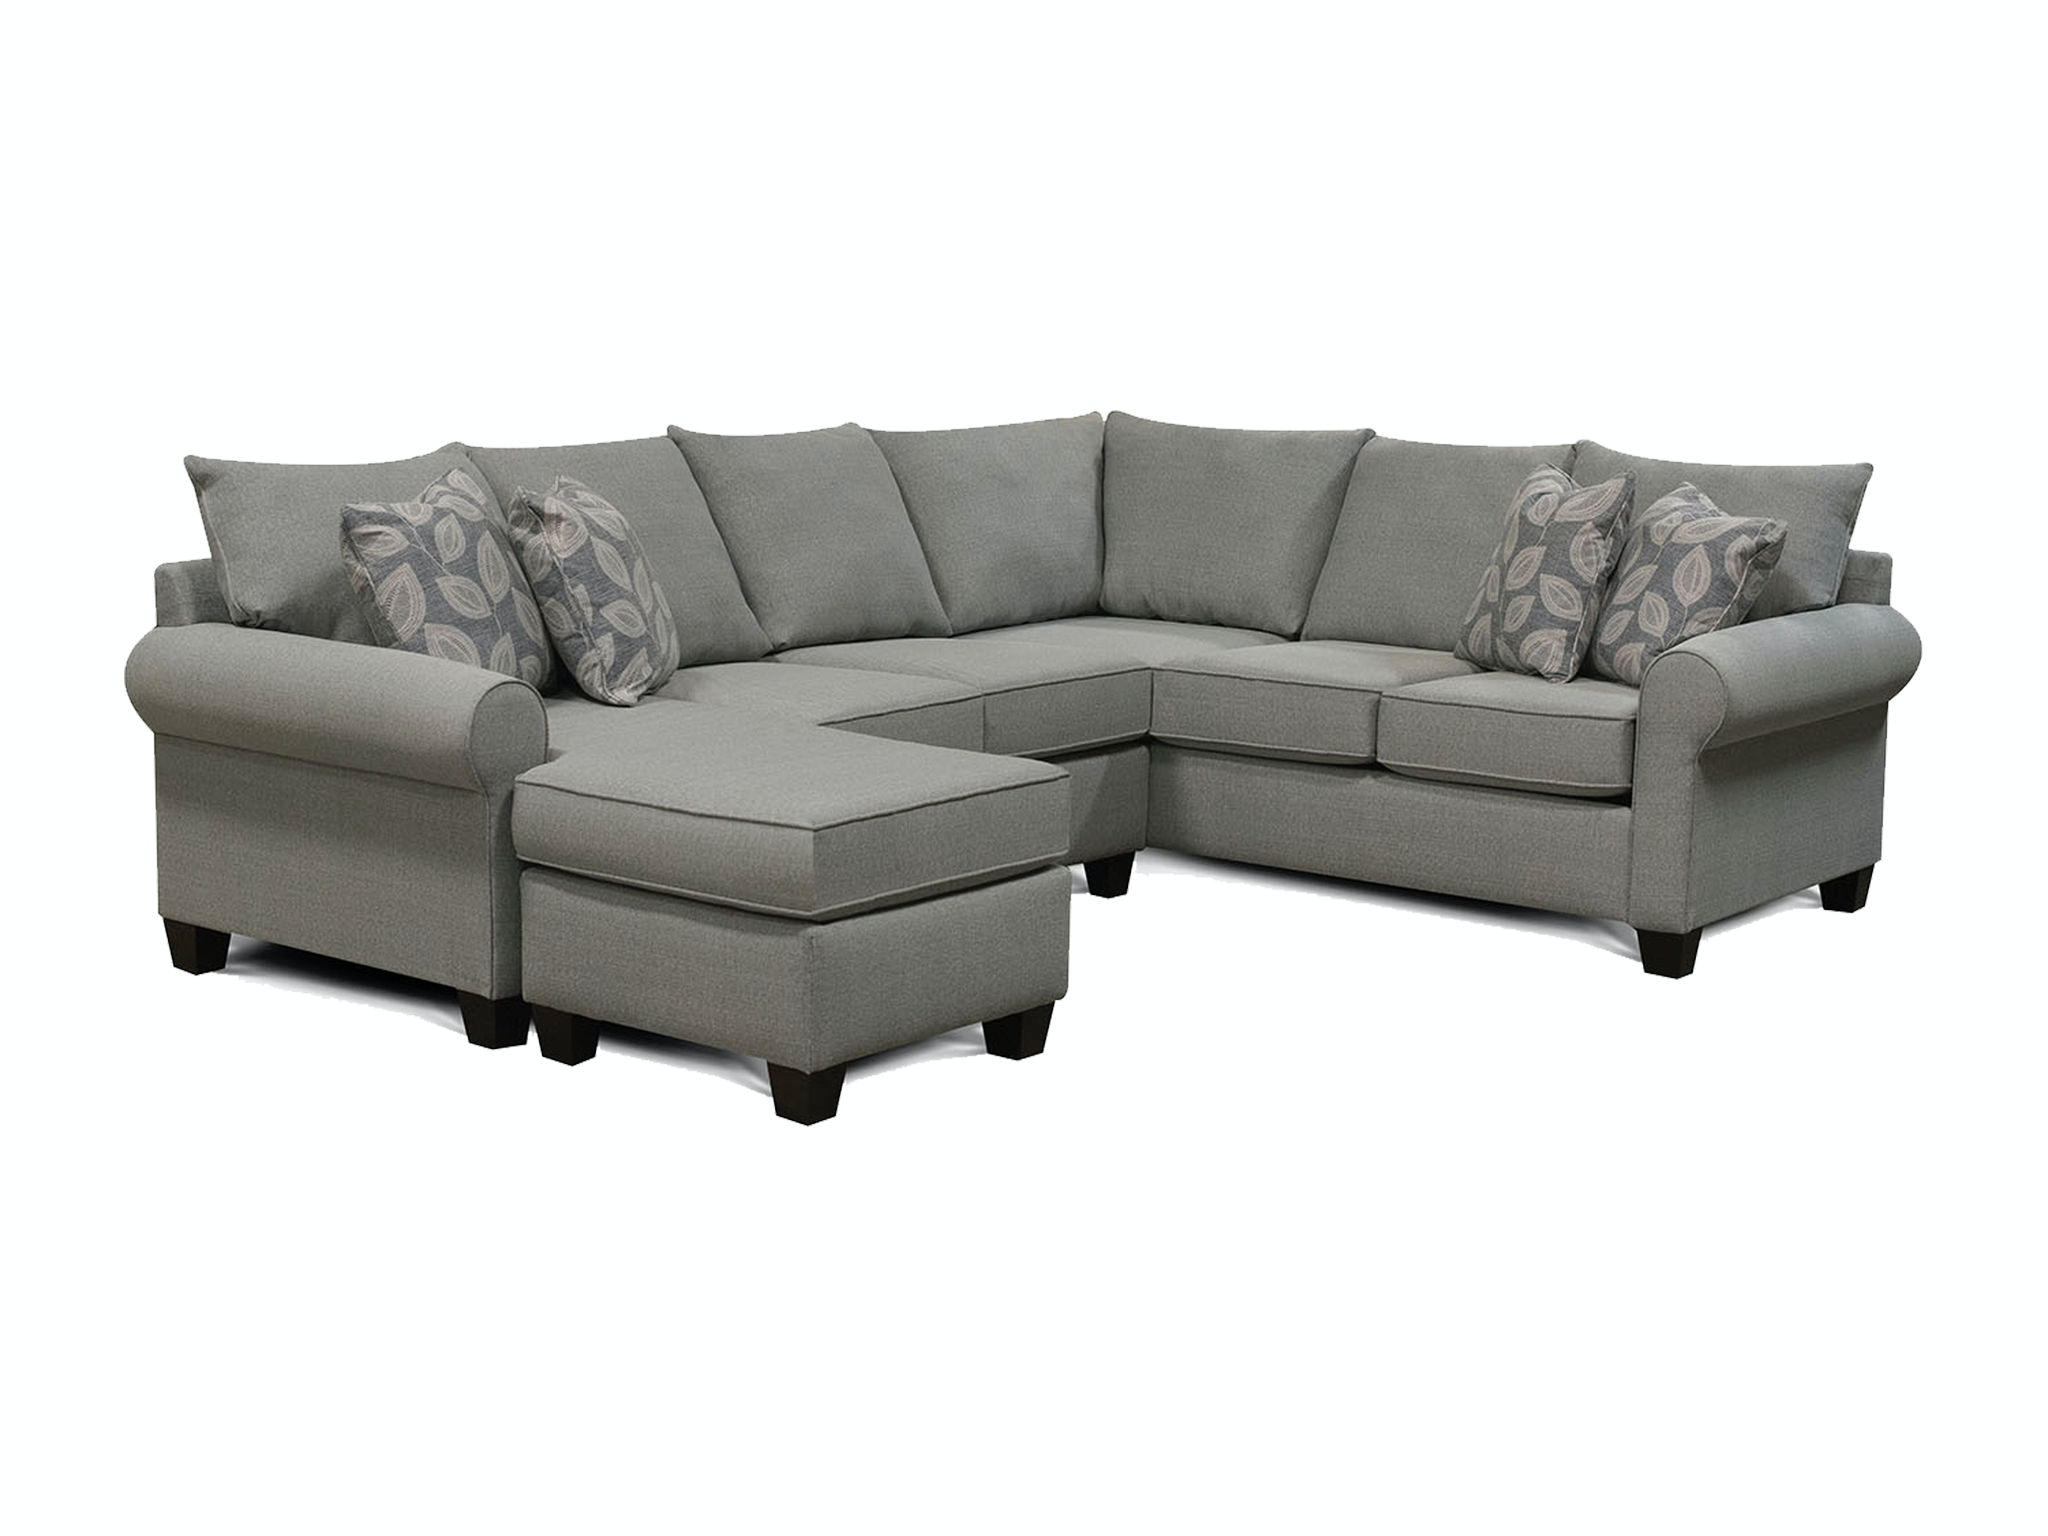 Attirant 6J00 SECT. Clementine Sectional